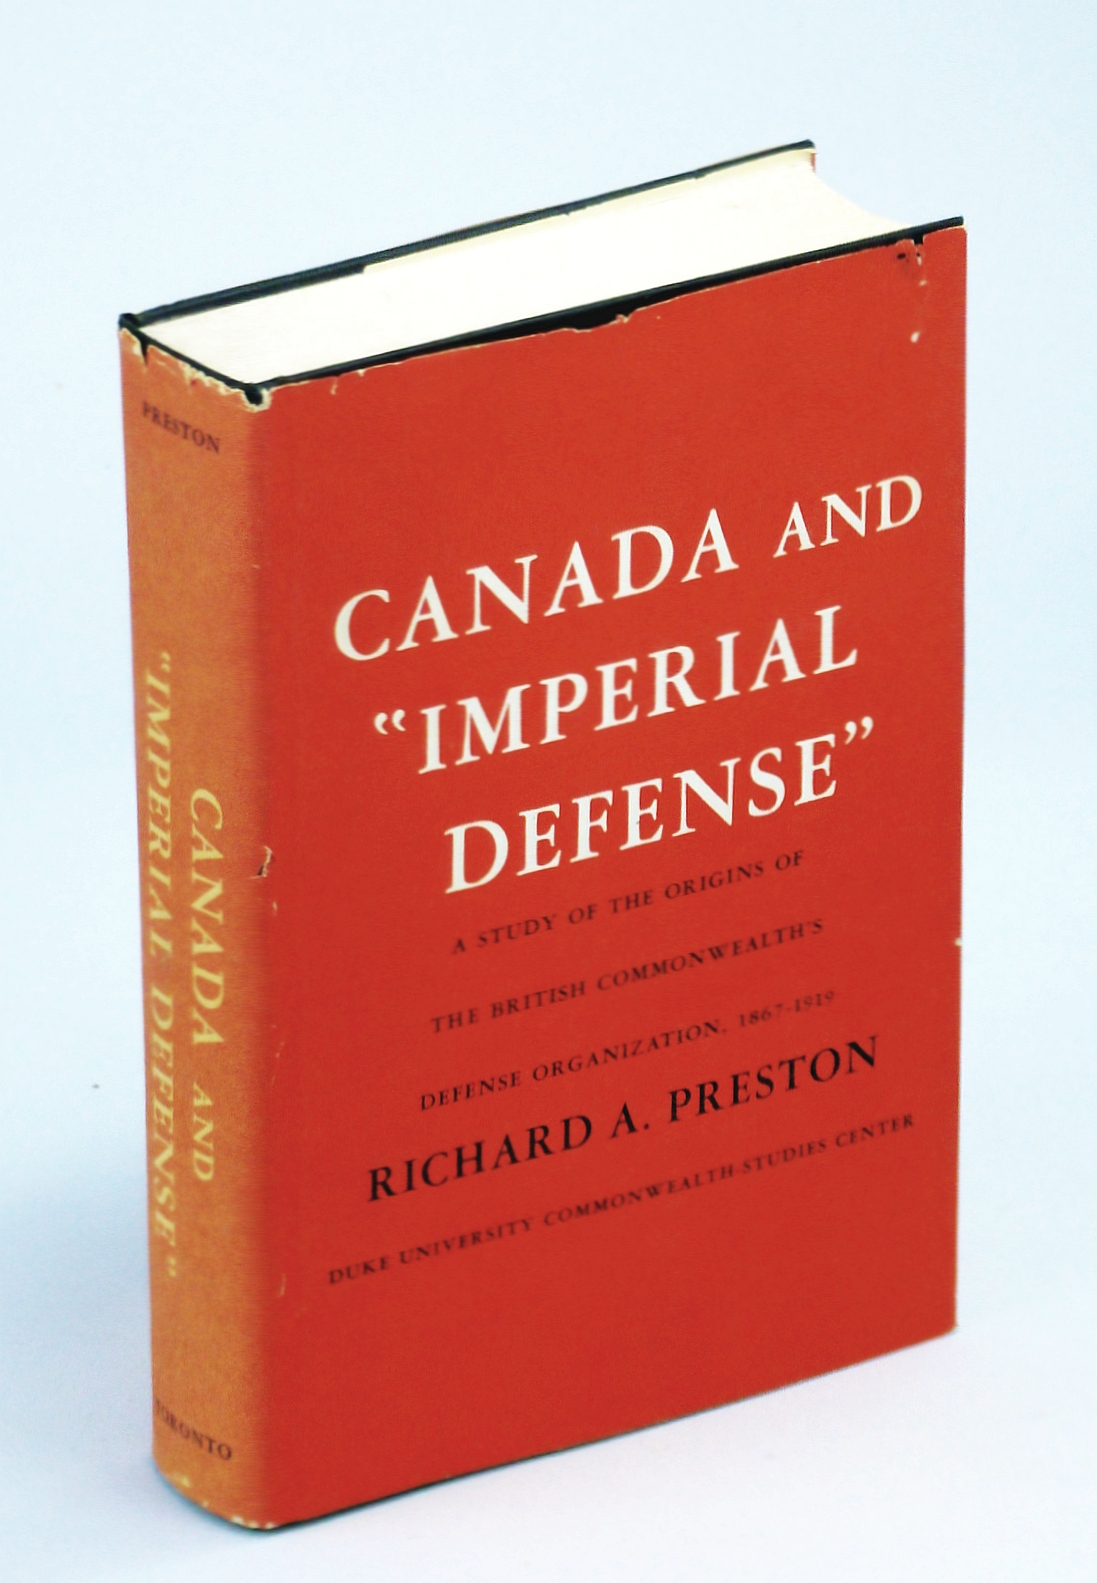 Image for Canada and imperial defense;: A study of the origins of the British Commonwealth's defense organization, 1867-1919 (Duke University Commonwealth-Studies Center Publication no. 29)